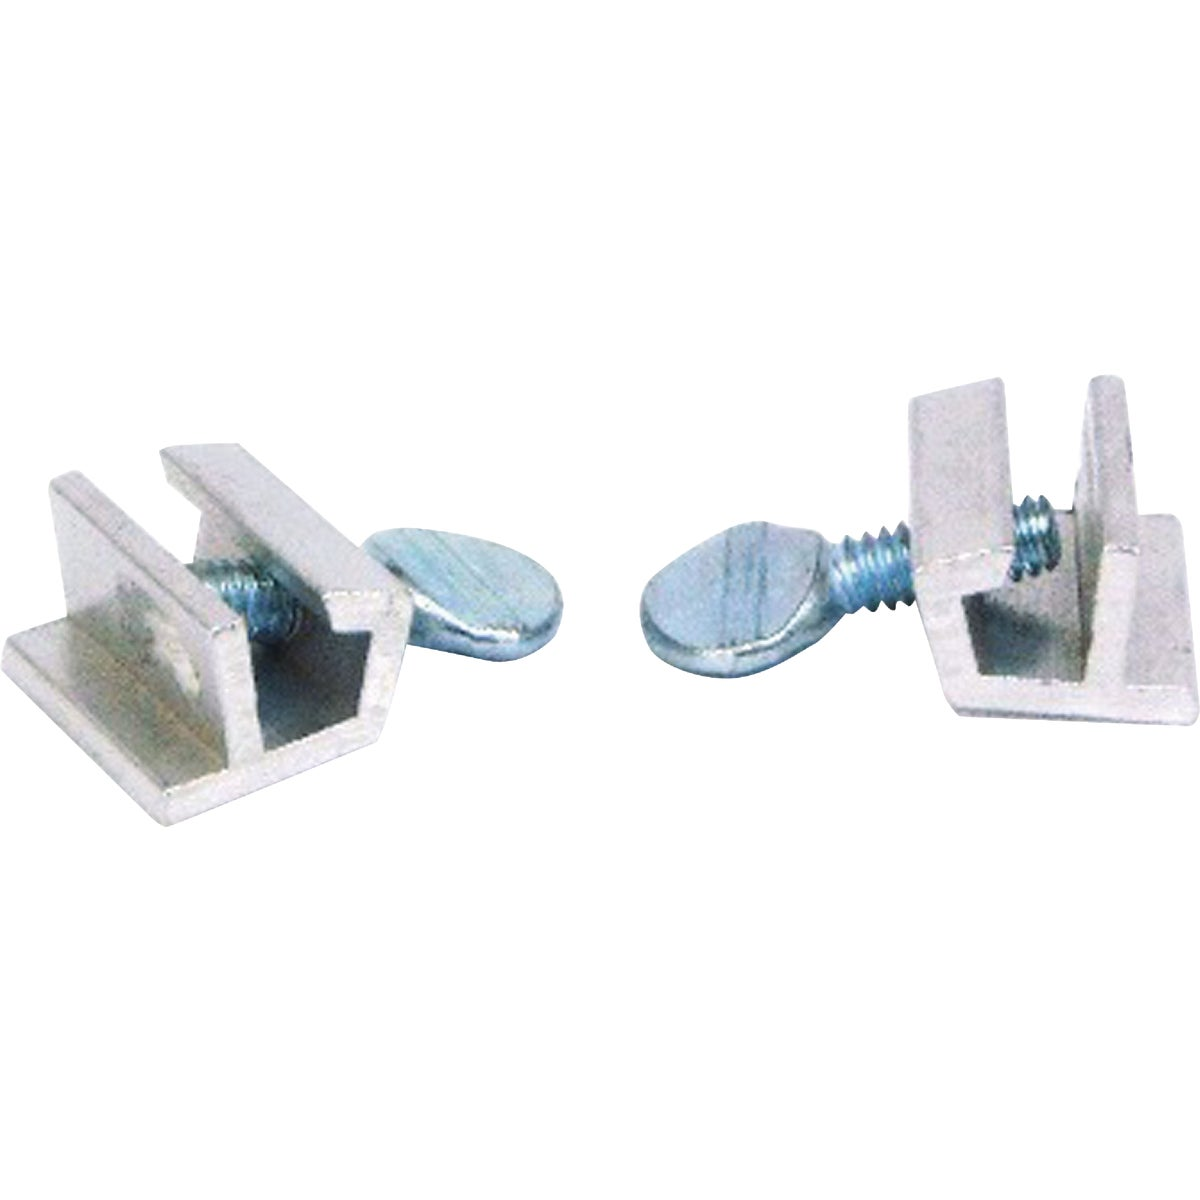 WINDOW SECURITY LOCK - WP-8950C by U S Hardware